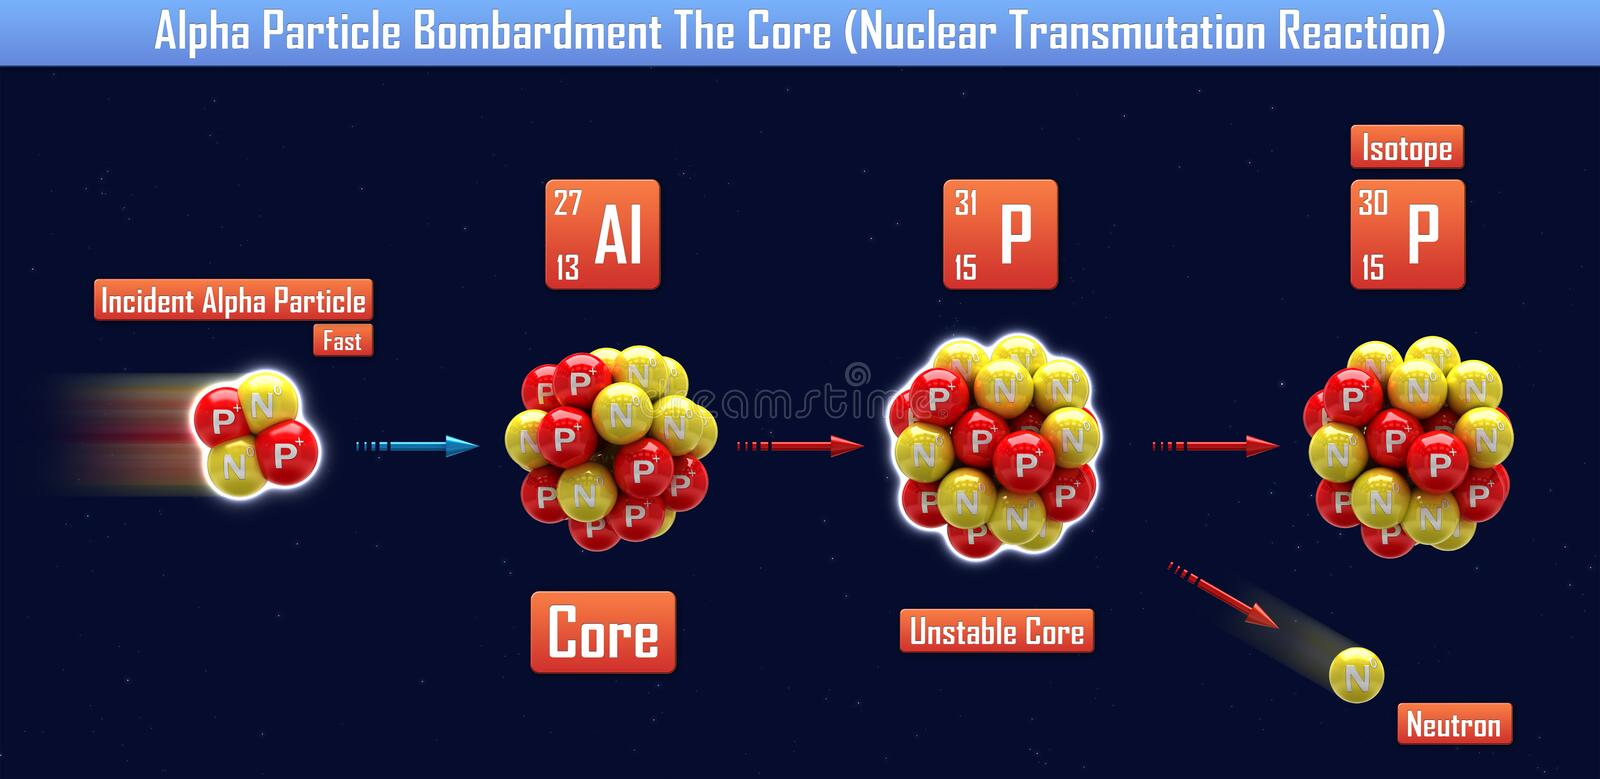 Réaction de transmutation nucléaire d'Alpha Particle Bombardment The Core illustration stock